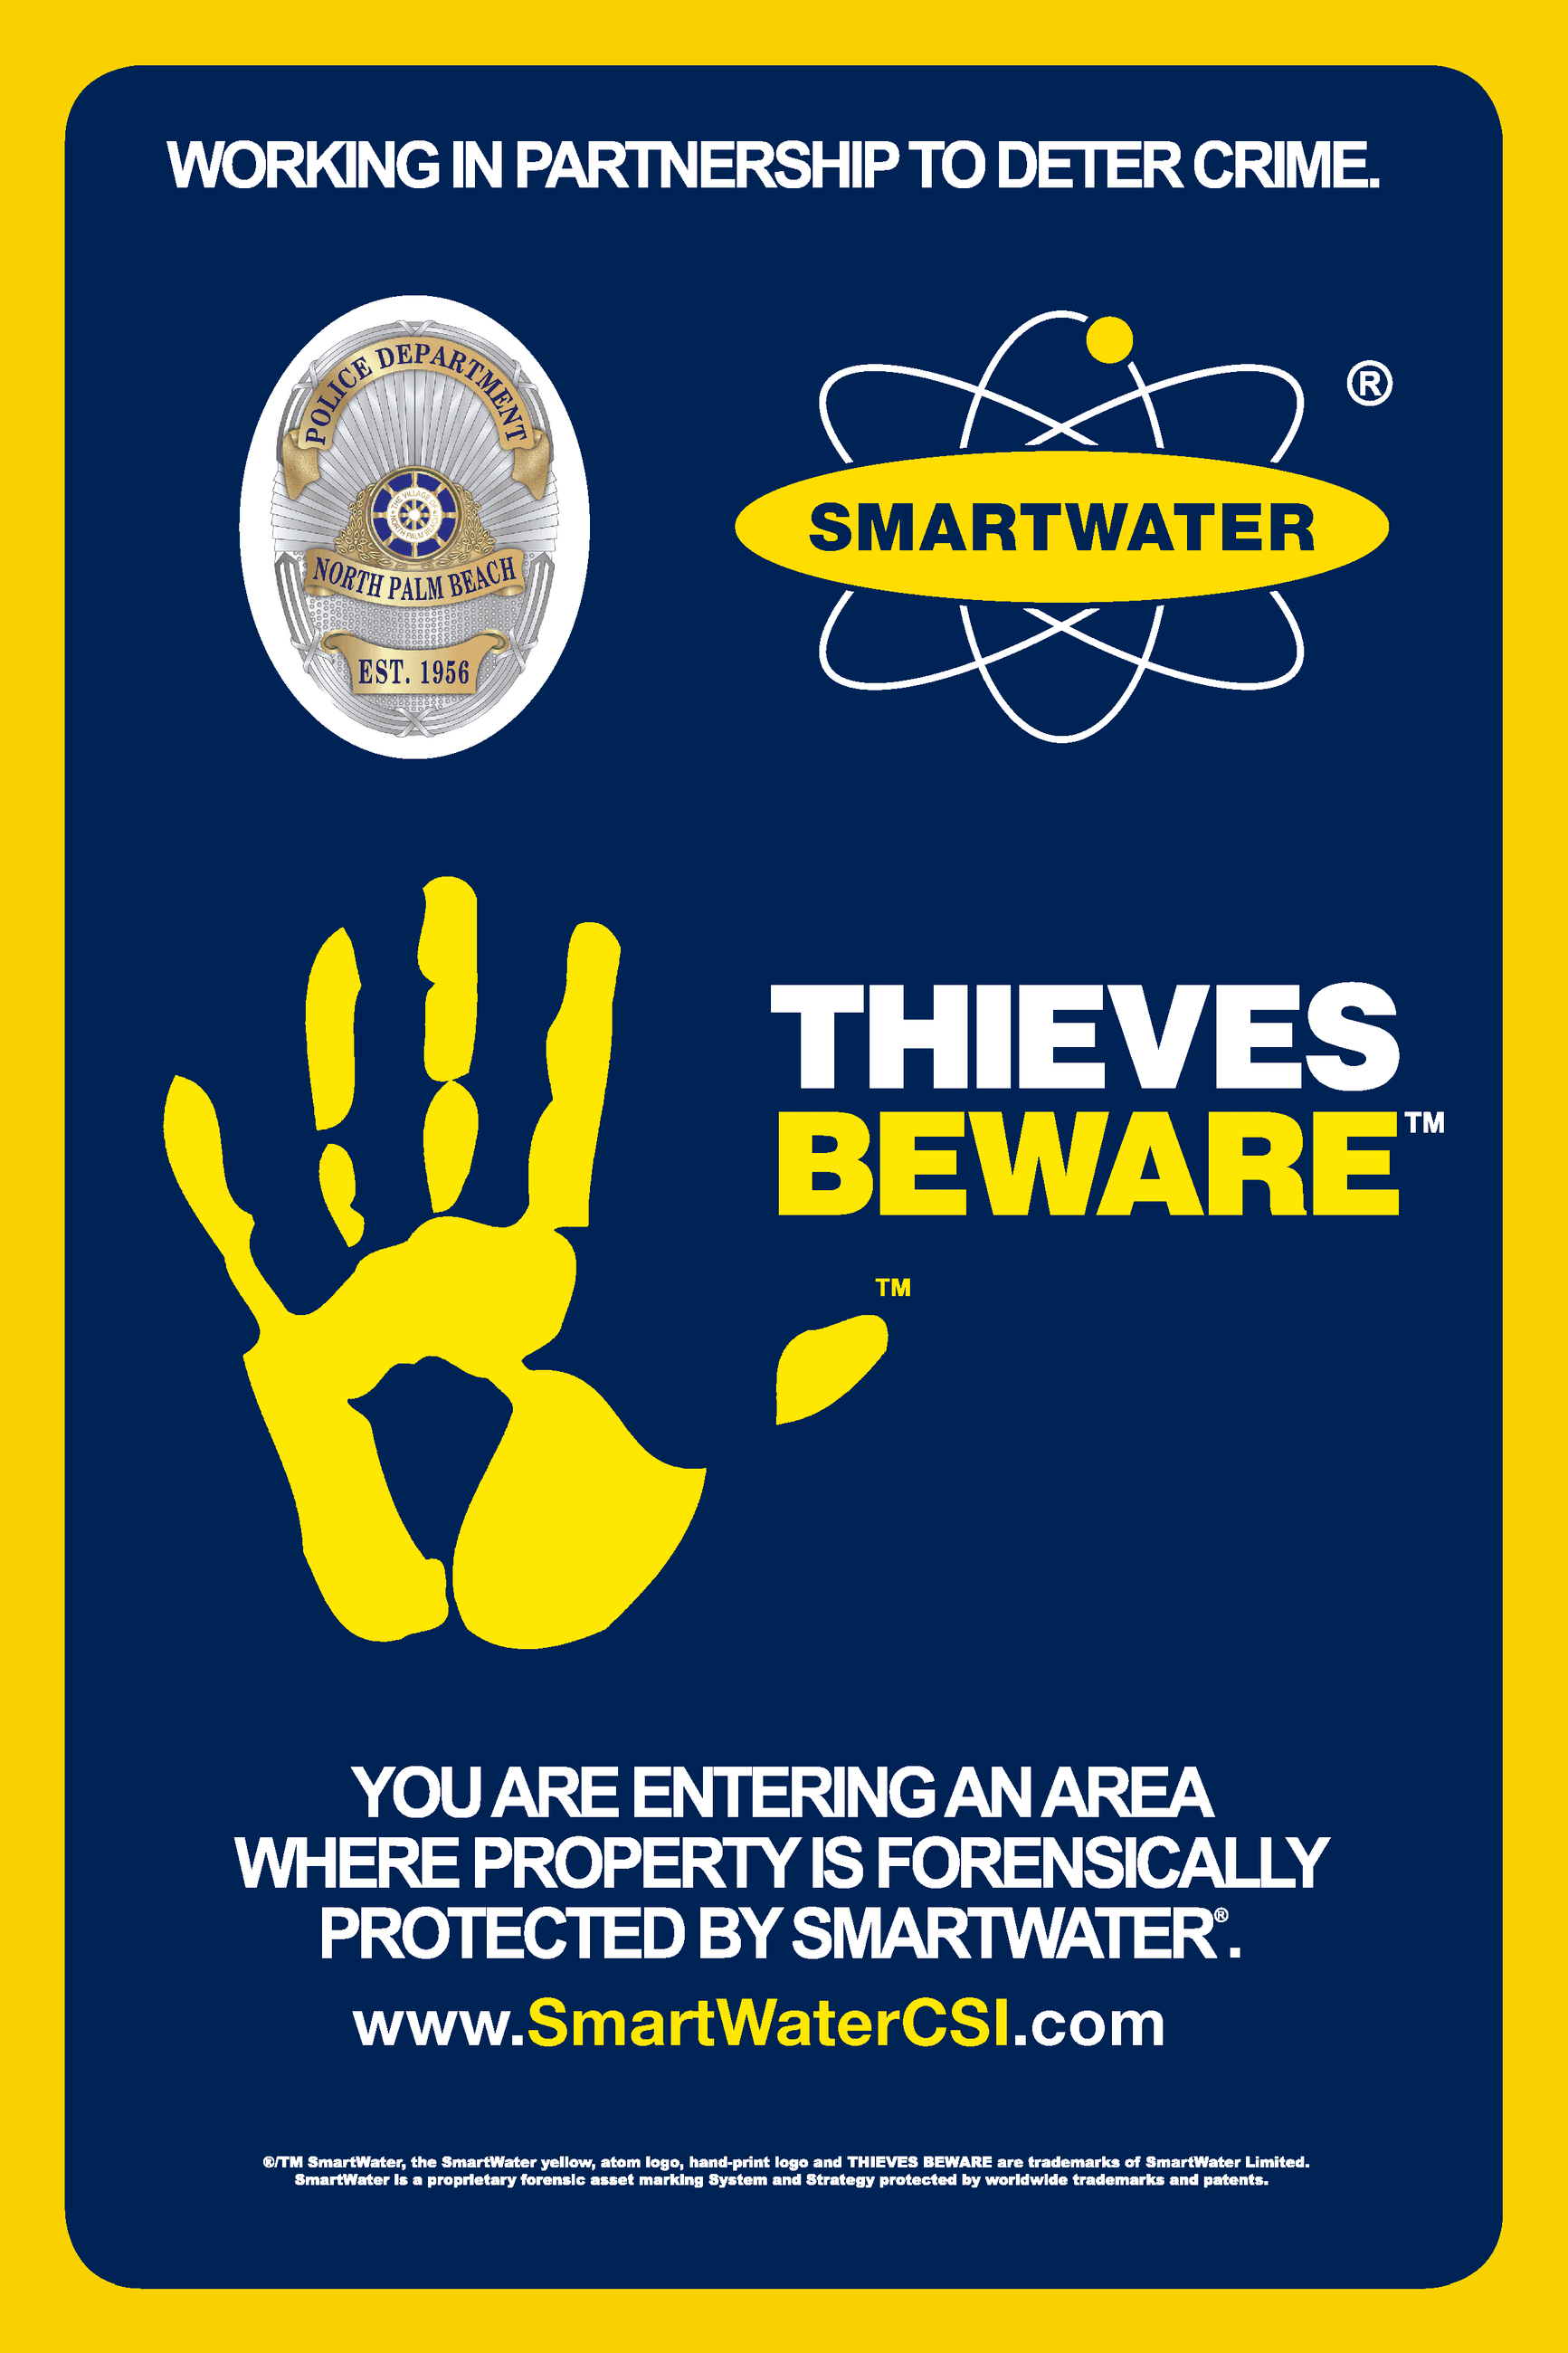 Image of SmartWater comany&#39s logo with North Palm Beach police badge in the upper left